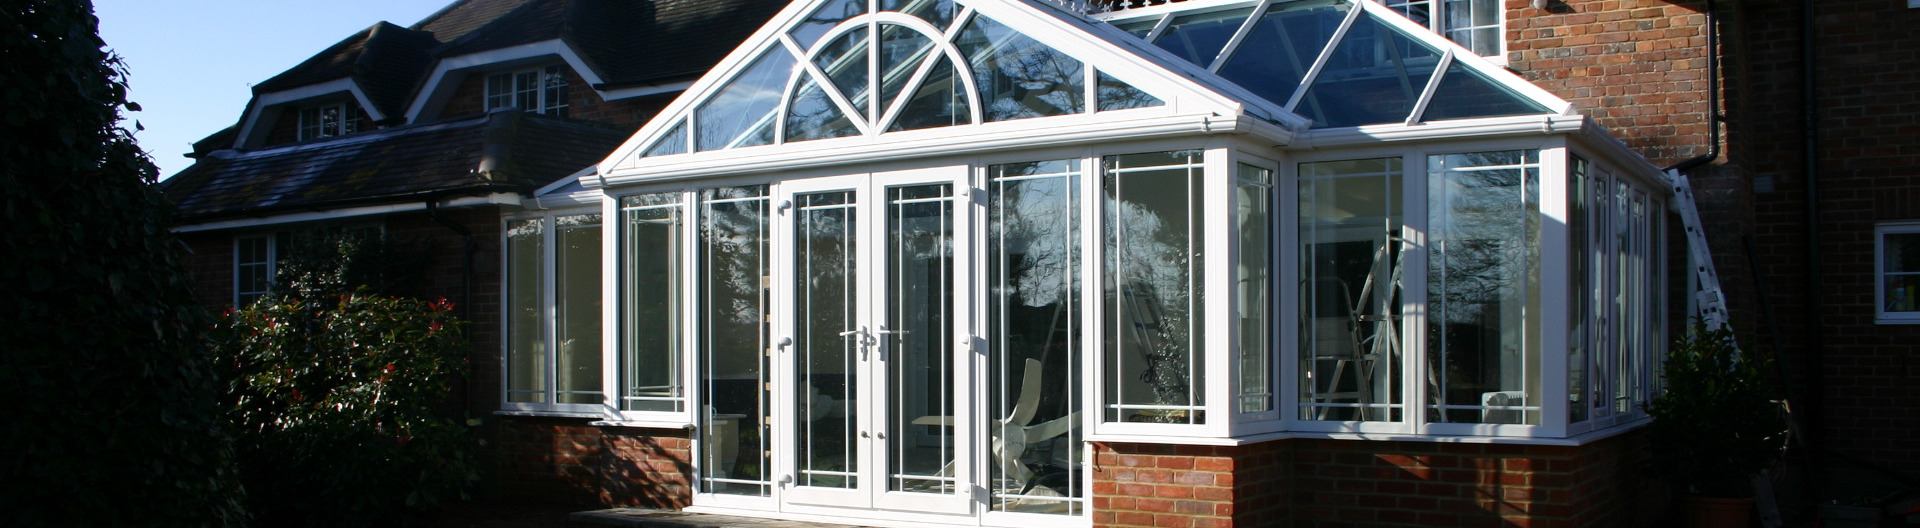 Stand Alone Conservatory Designs : Diy conservatories conservatory kits the conservatory group